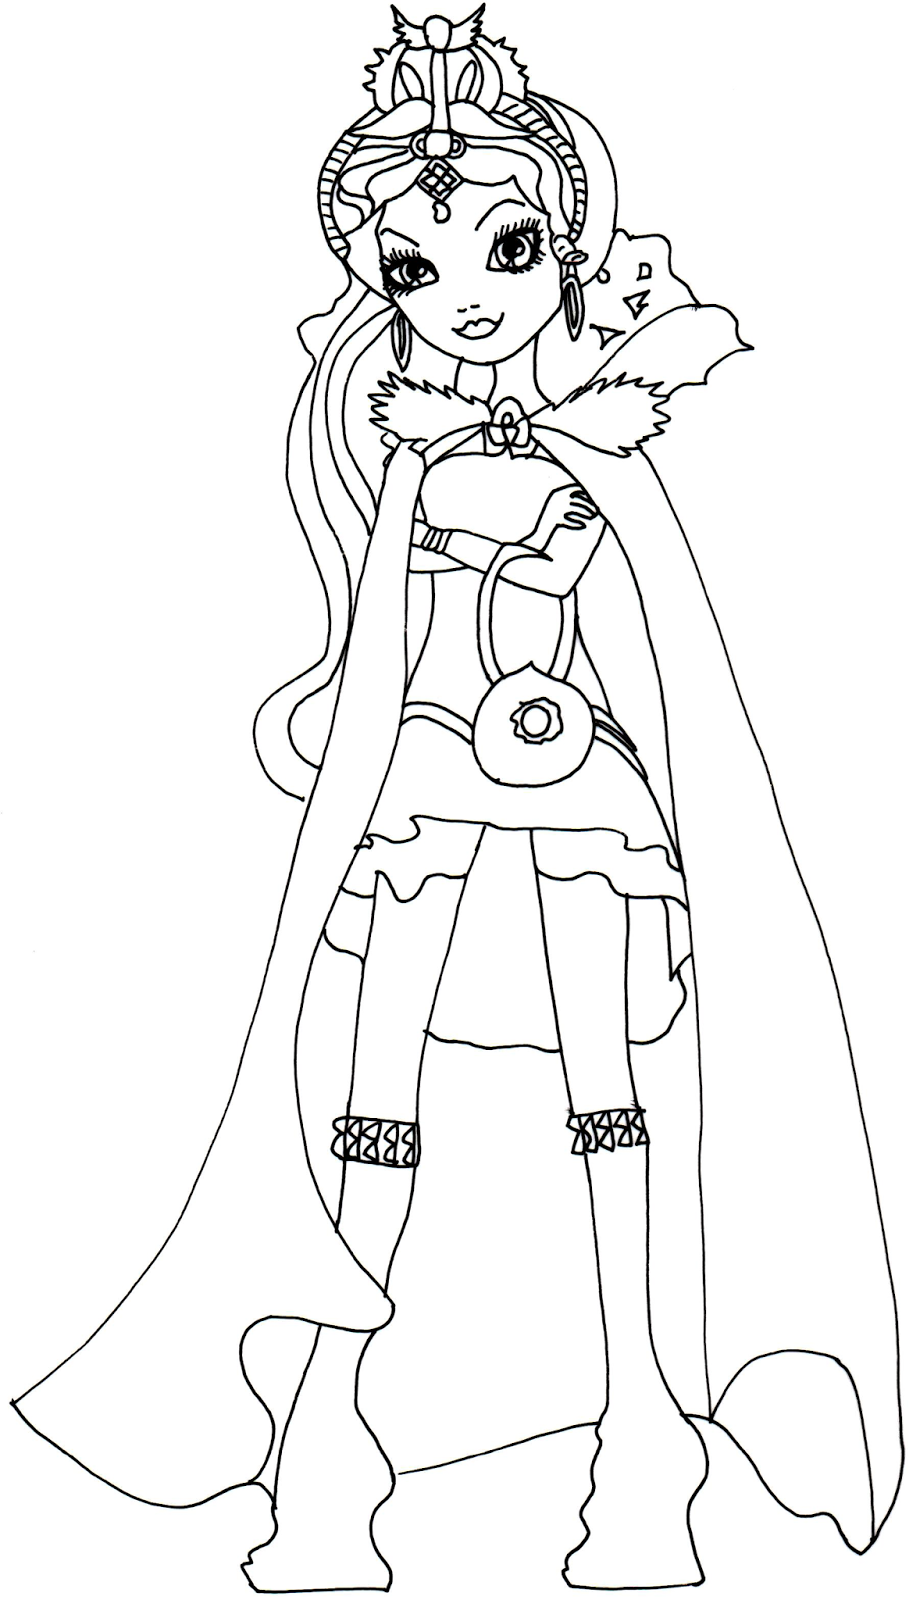 queen coloring pages - photo#31